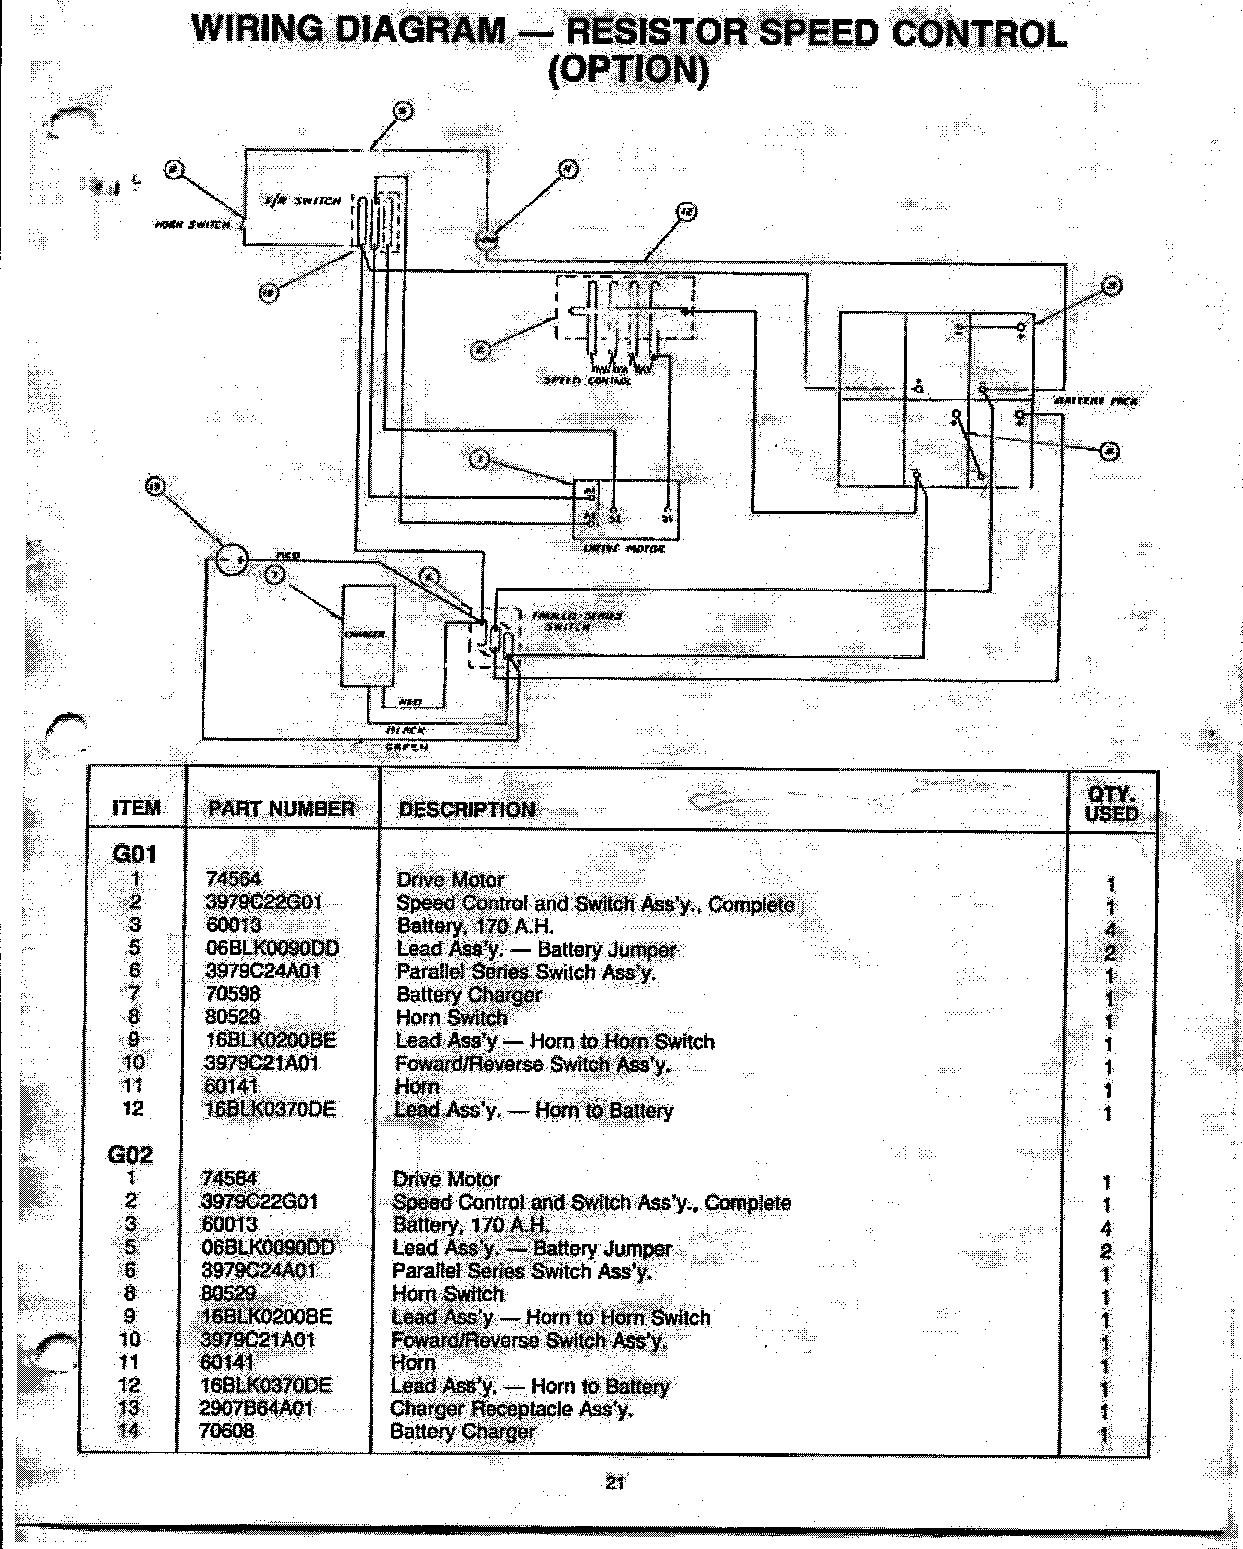 99 2005 Grand Am Fuse Box Ground Taylor 210e Guitar Wiring Diagram Auto Electrical Related With